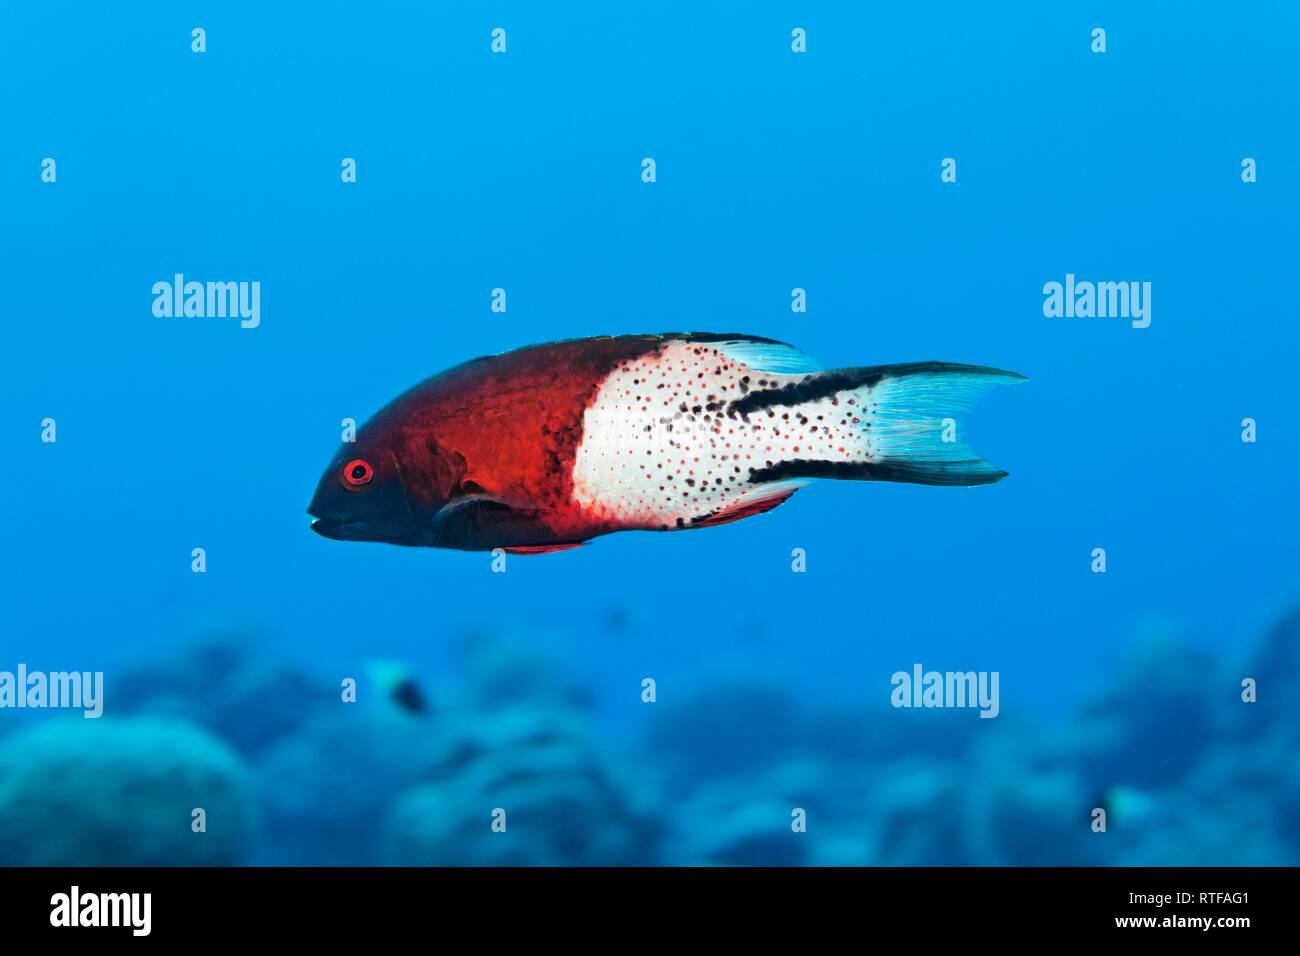 Lyre-tail hogfish (Bodianus anthioides) swims over coral reef, Red Sea, Egypt - Stock Image